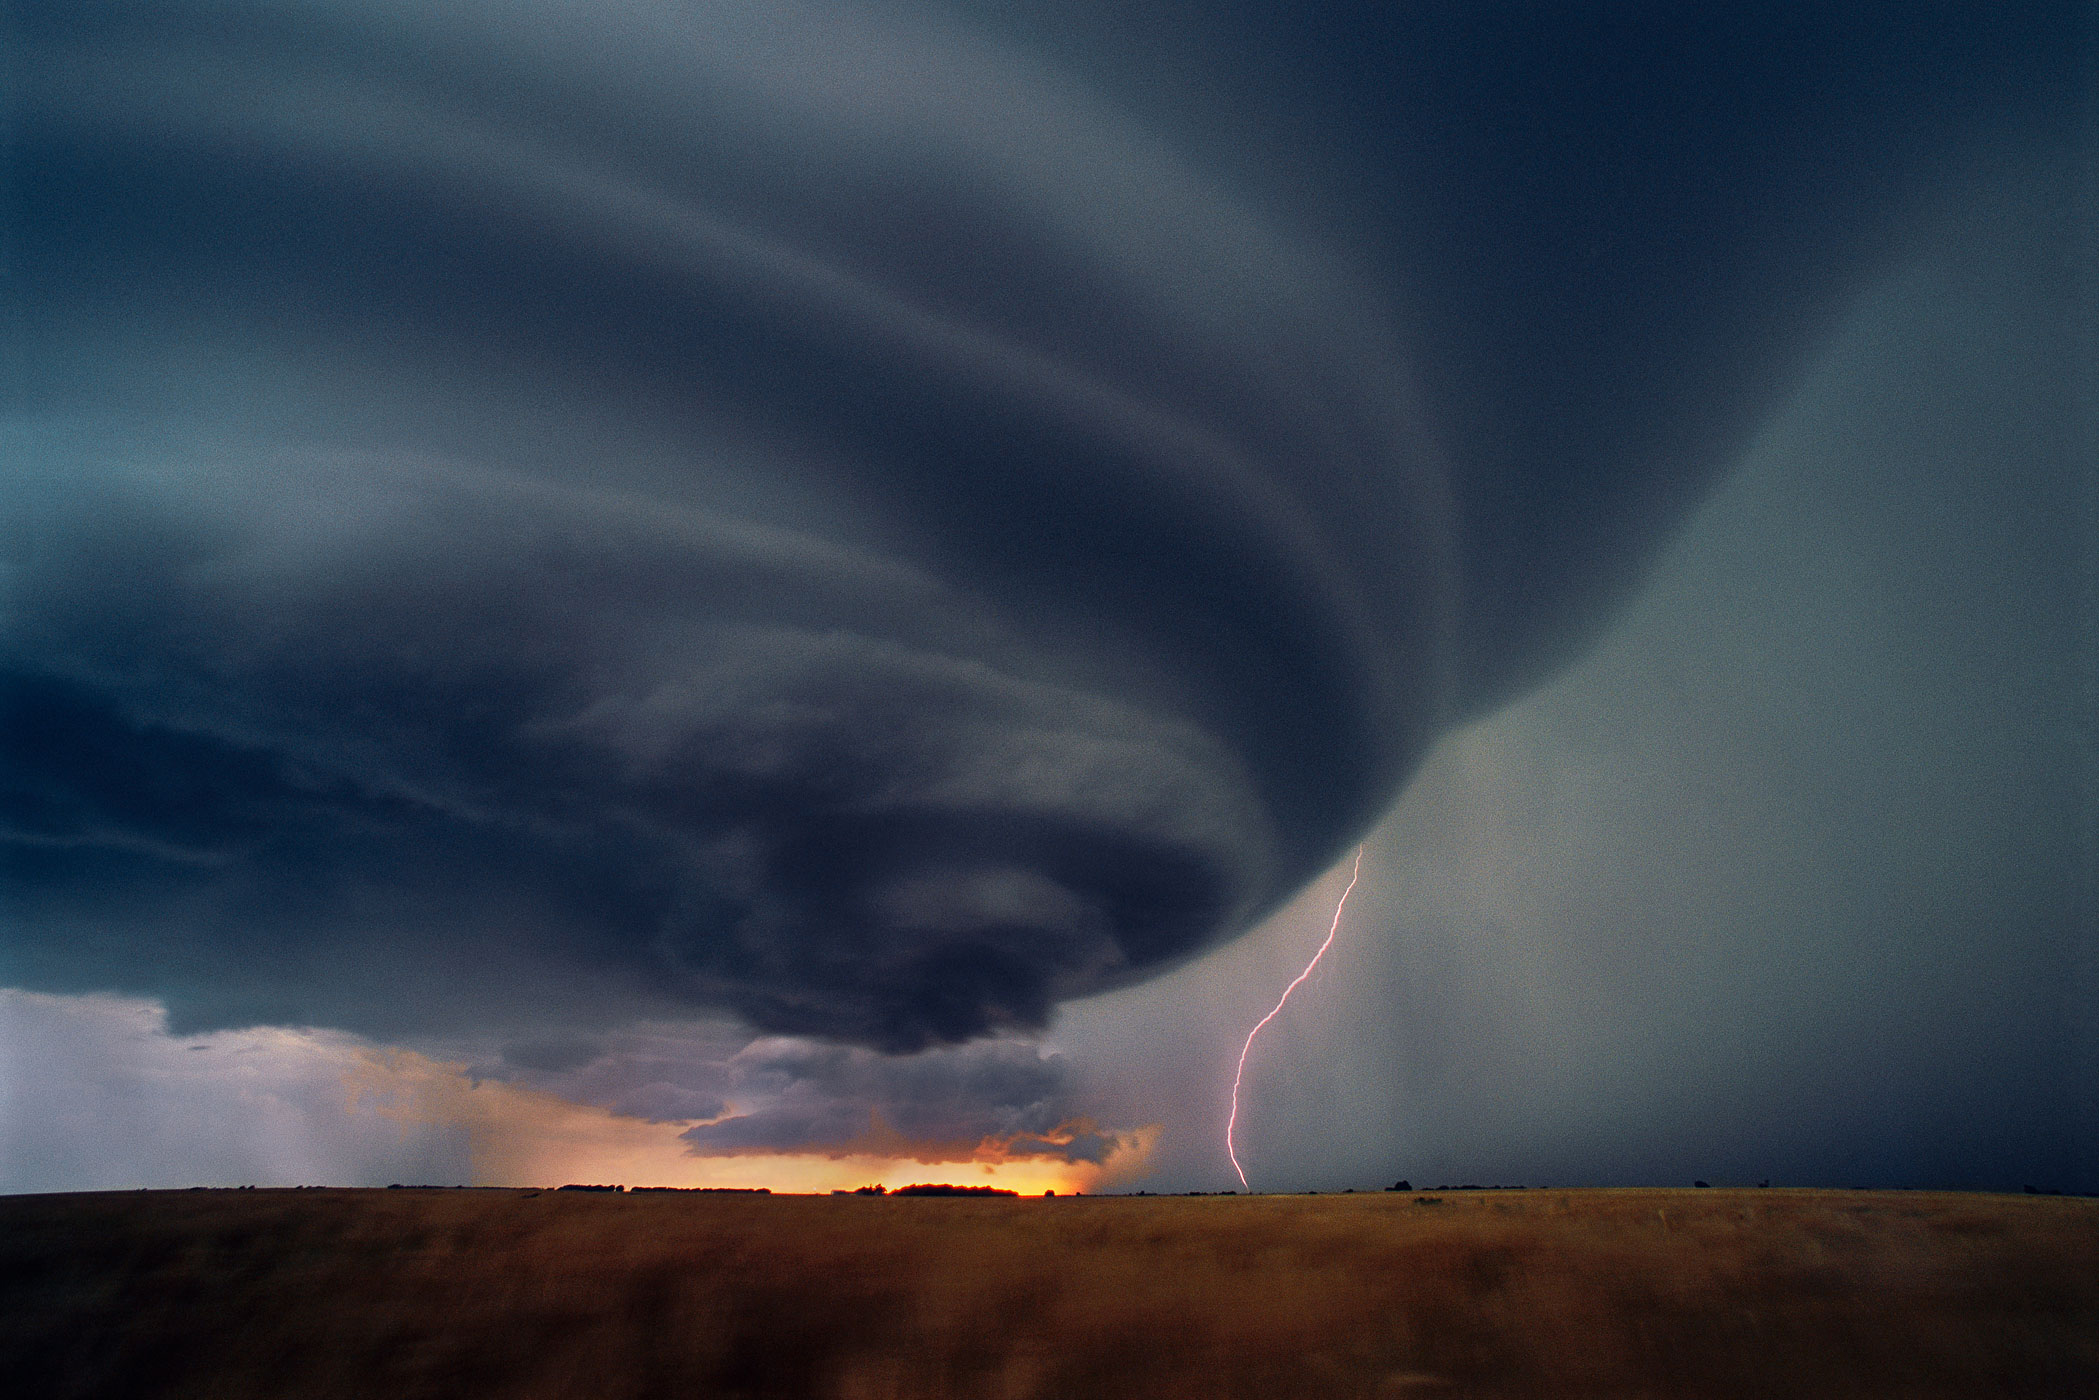 A lone lightning bolt strikes the ground beneath an isolated supercell thunderstorm at sunset in Kansas, June 5, 2004.